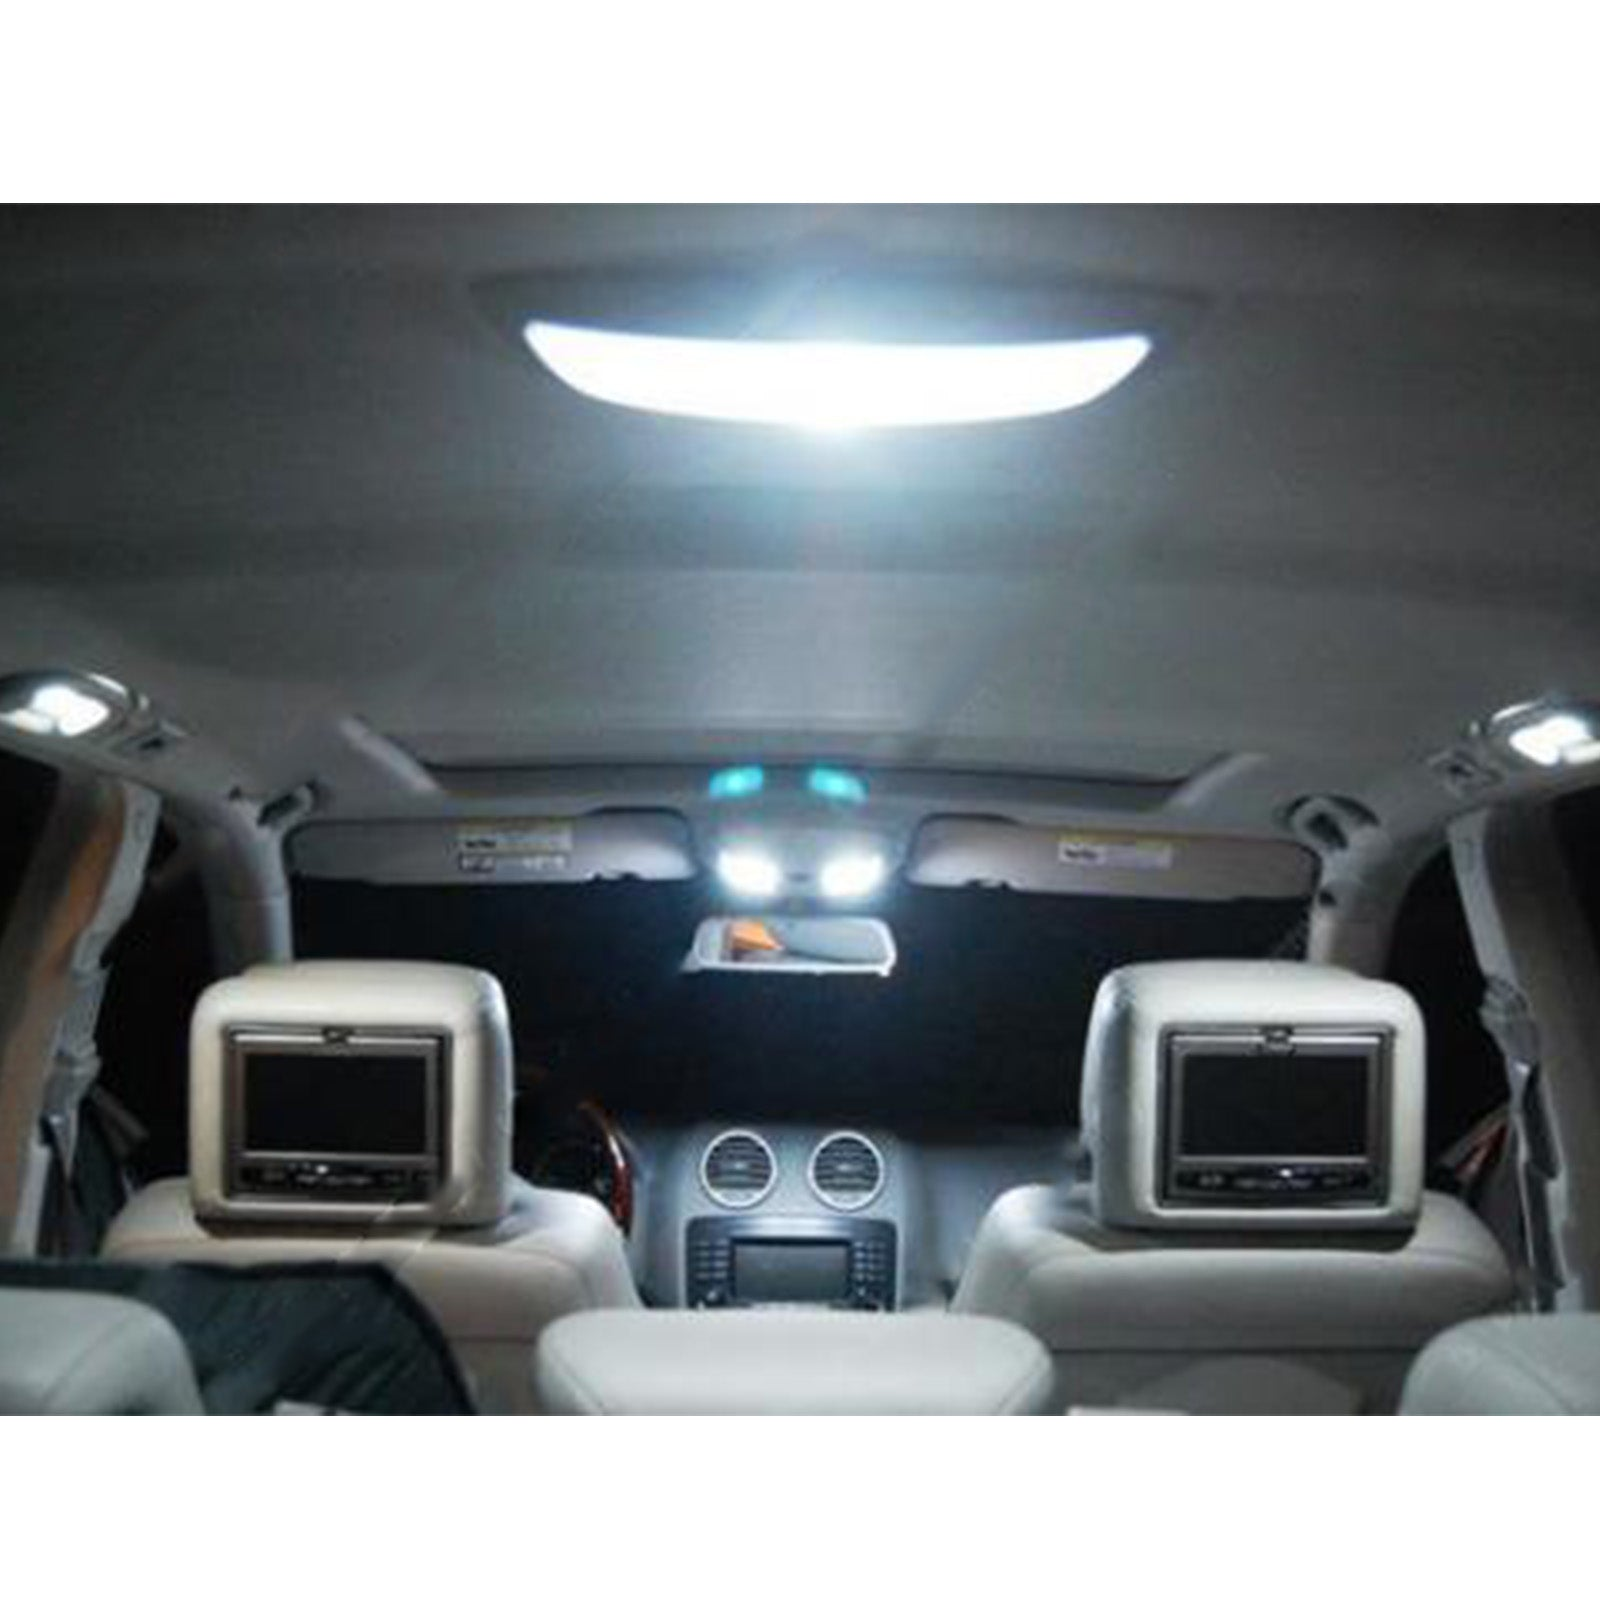 2006 Models Acura MDX 11pcs LED Full Interior